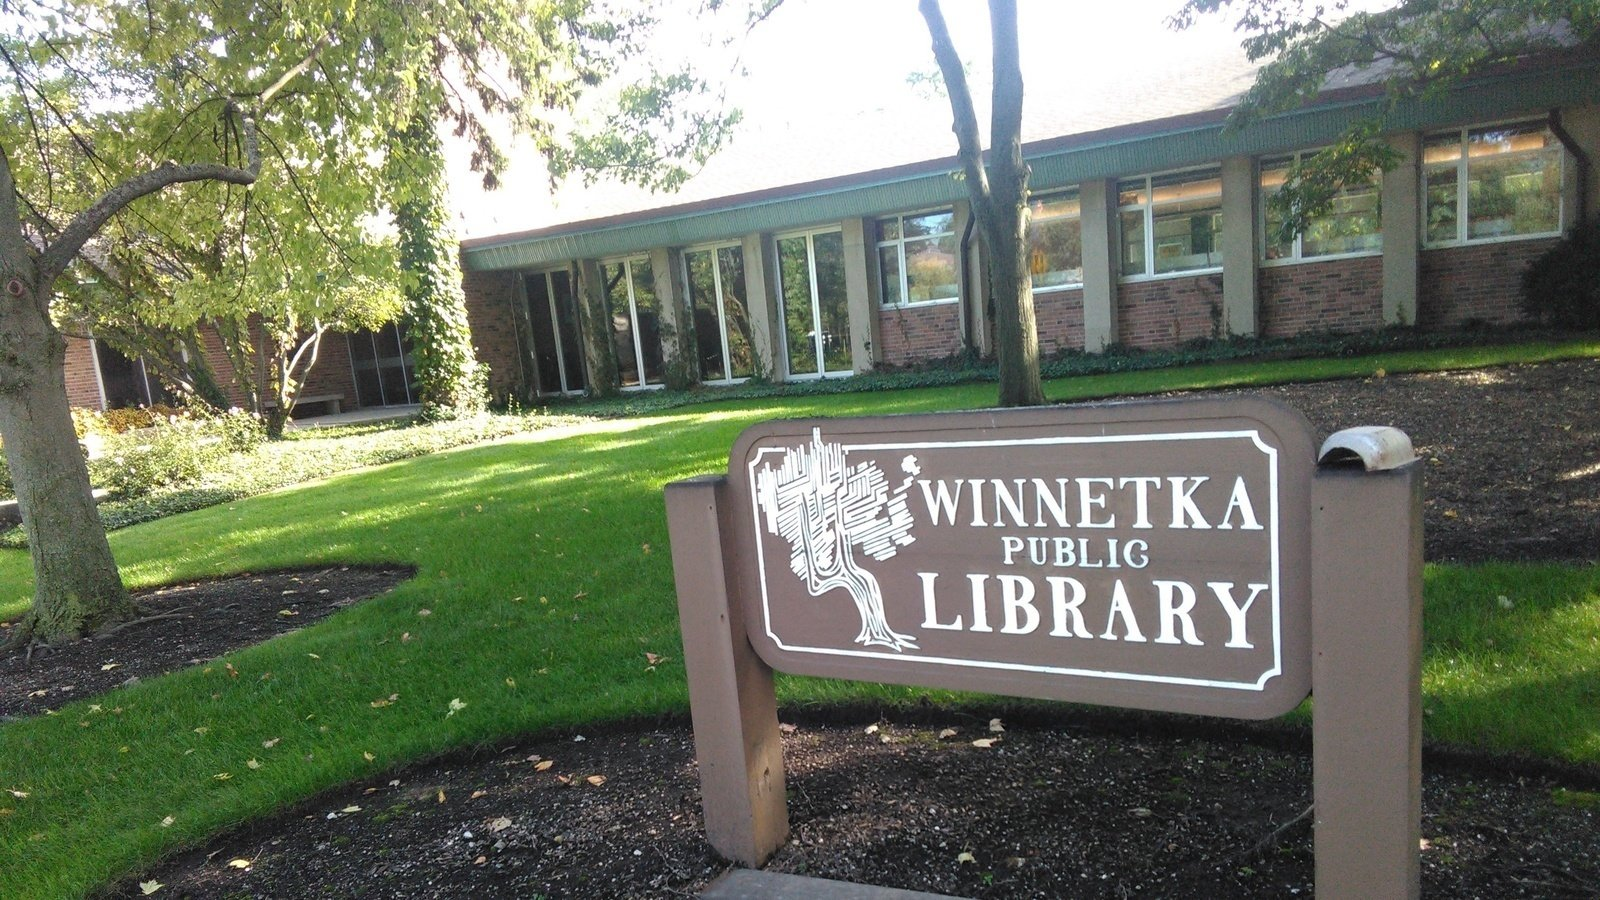 Winnetka-Northfield library